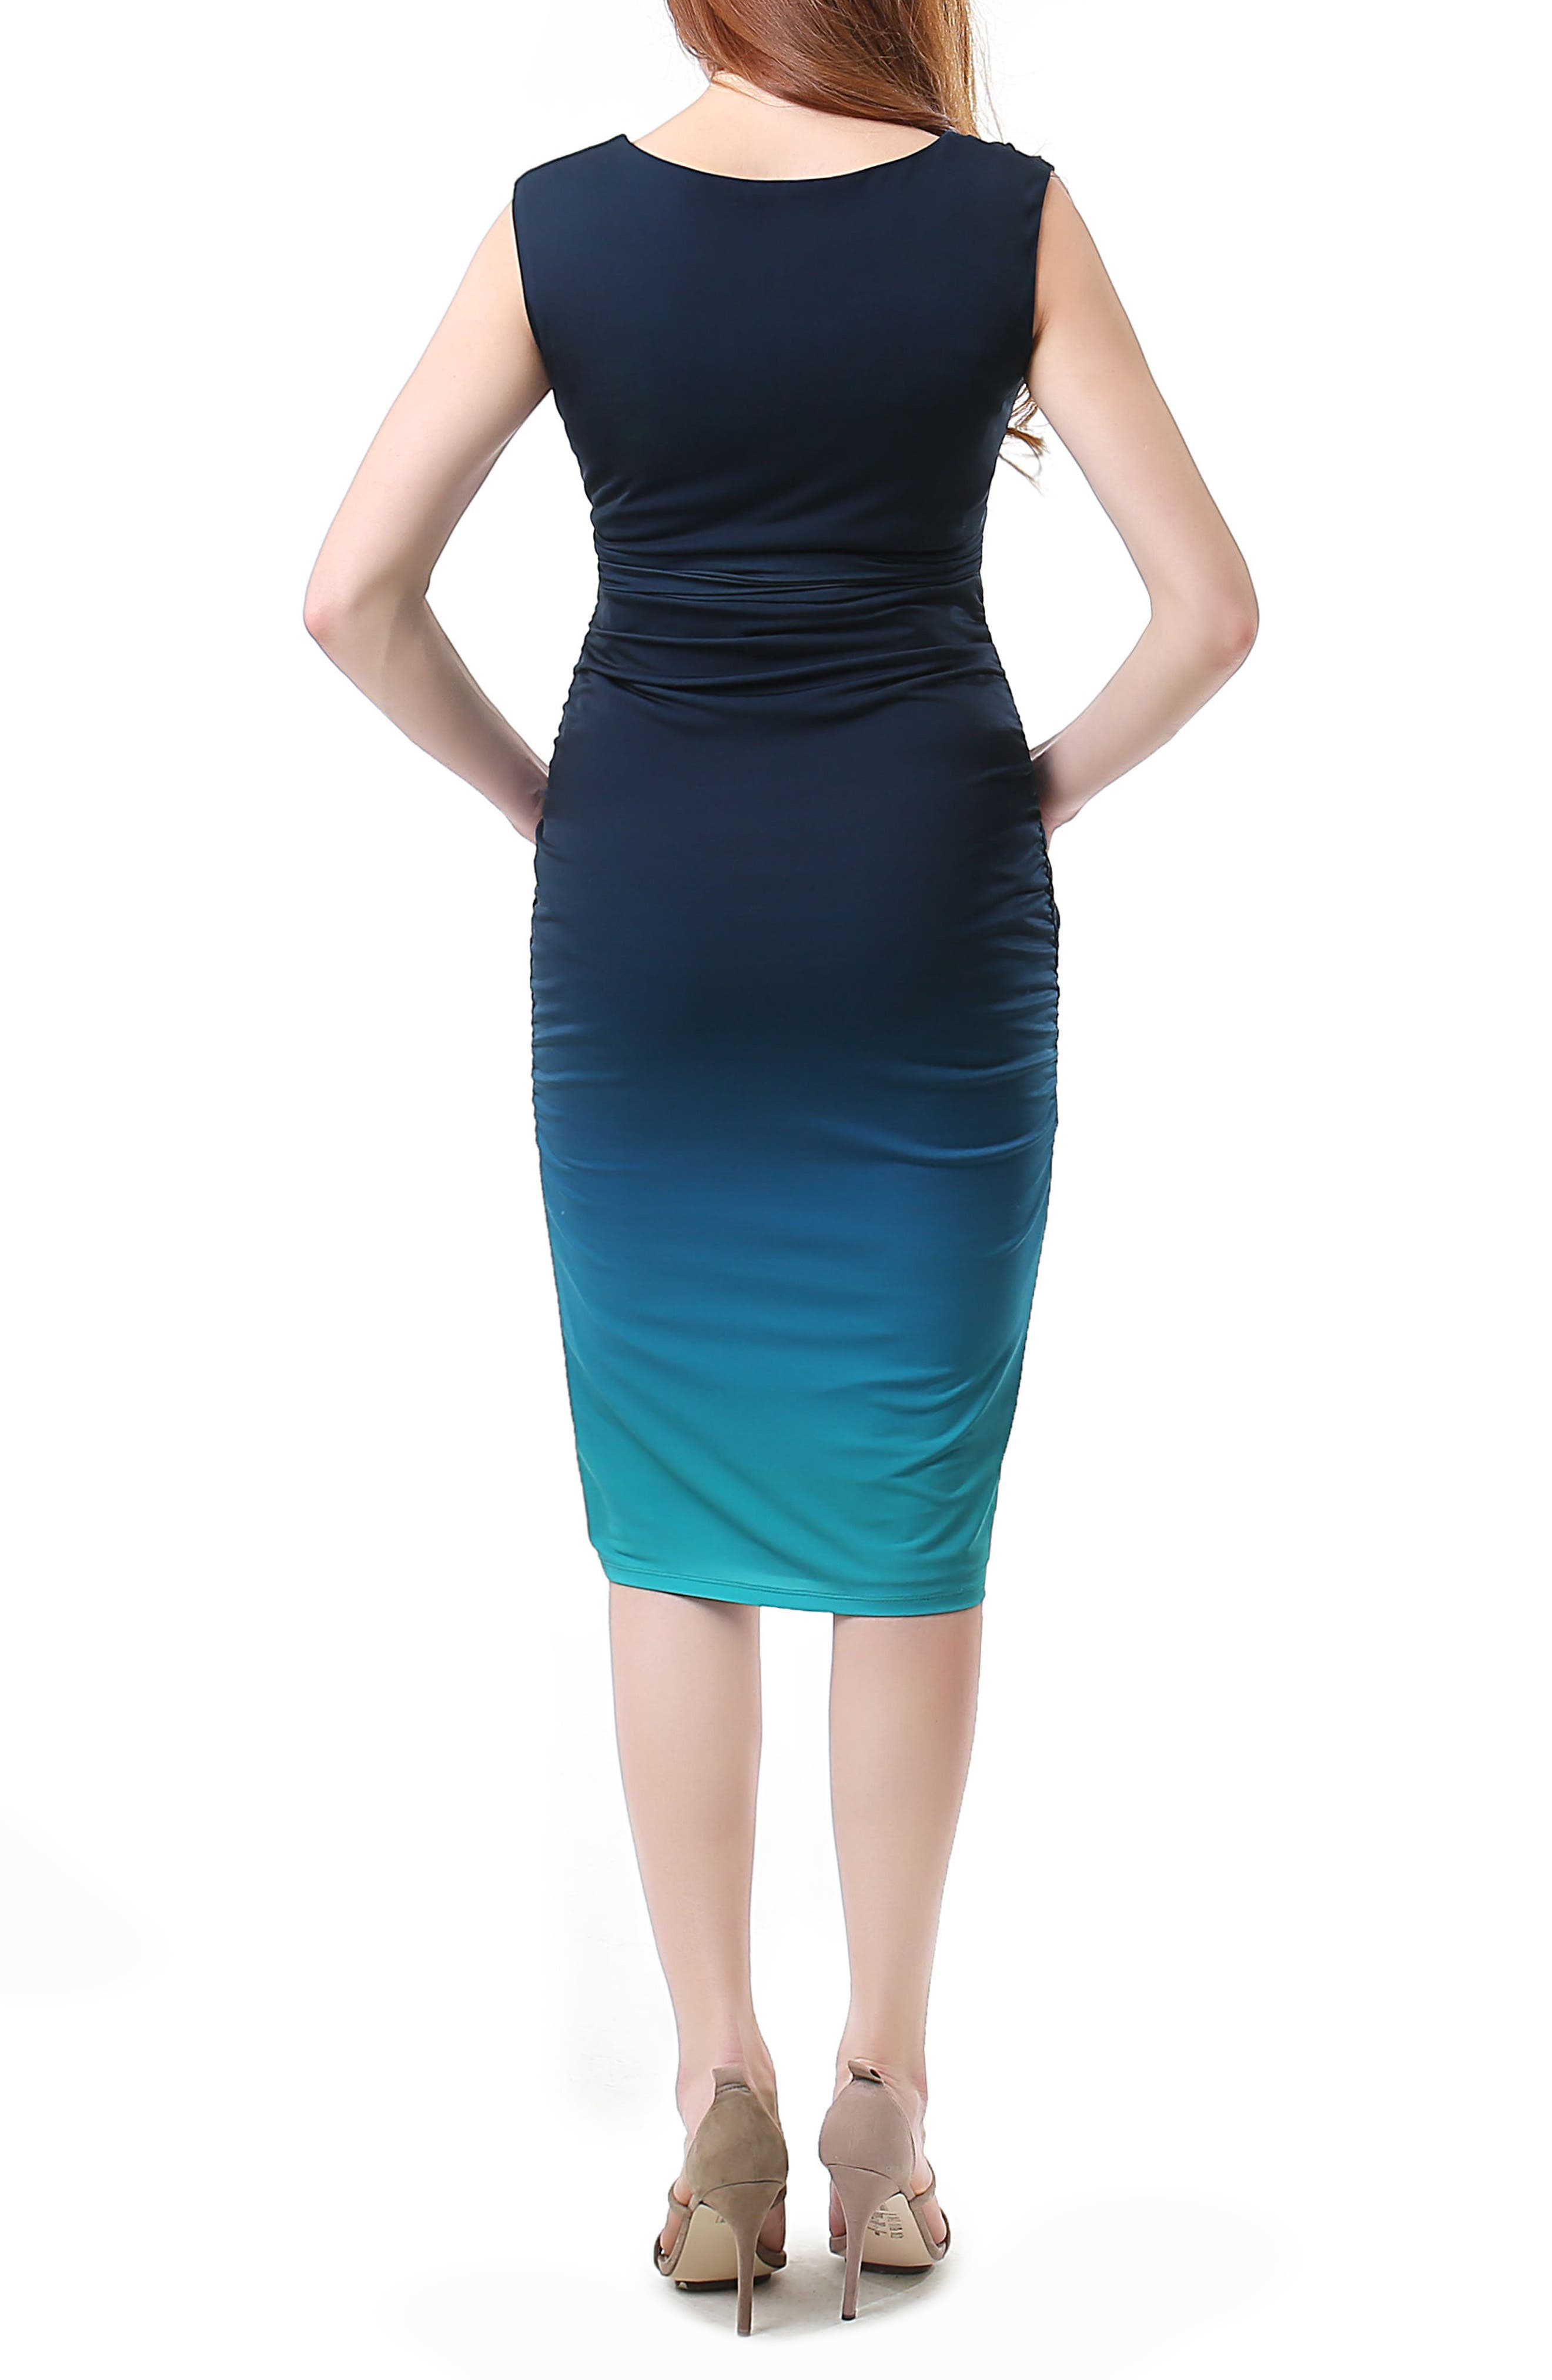 Maura Ruched Ombré Maternity Dress,                             Alternate thumbnail 2, color,                             440